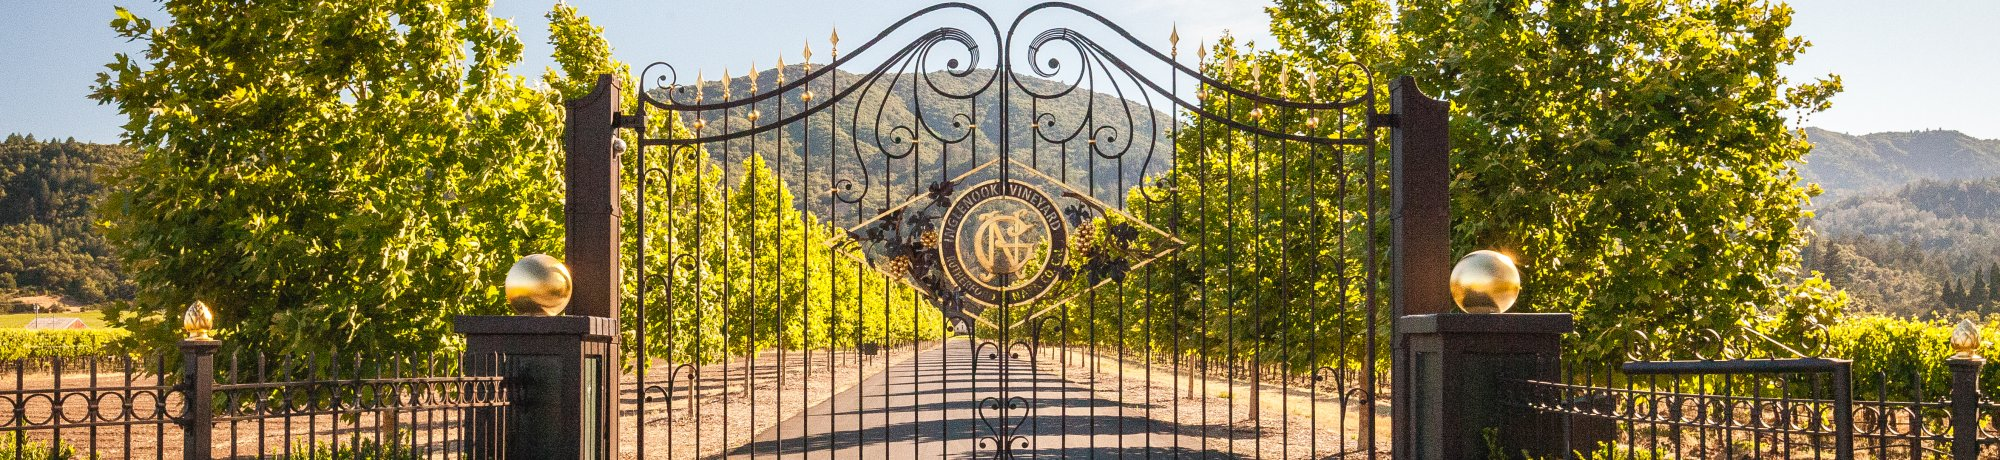 Wrought iron entrance gates to Inglewood Winery in Napa, California.